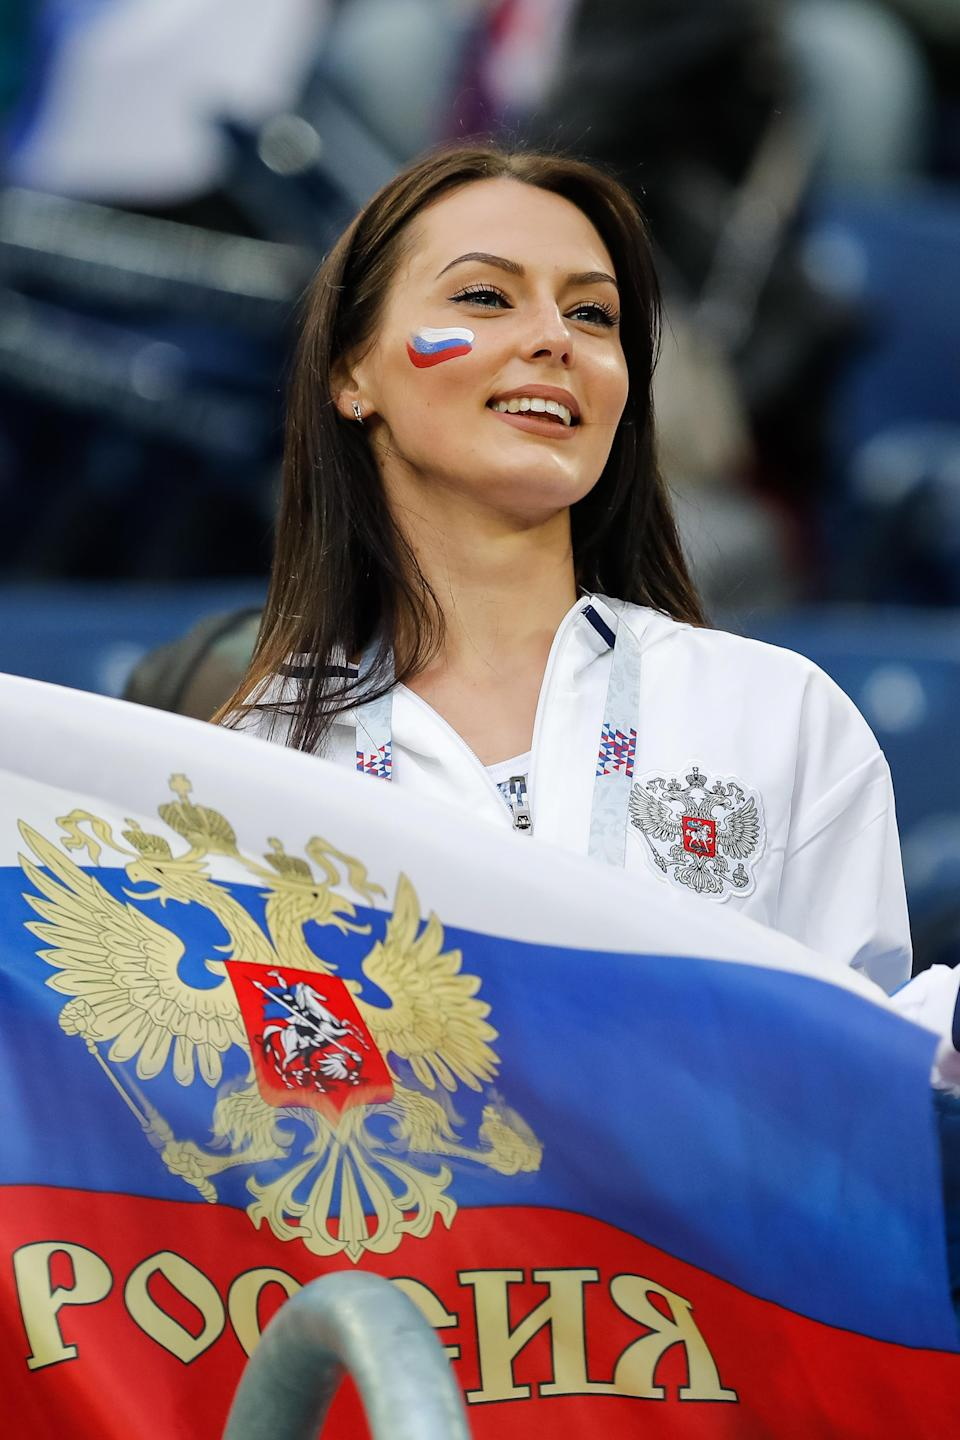 <p>Russia supporter during the 2018 FIFA World Cup Russia group A match between Russia and Egypt on June 19, 2018 at Saint Petersburg Stadium in Saint Petersburg, Russia. (Photo by Mike Kireev/NurPhoto via Getty Images) </p>